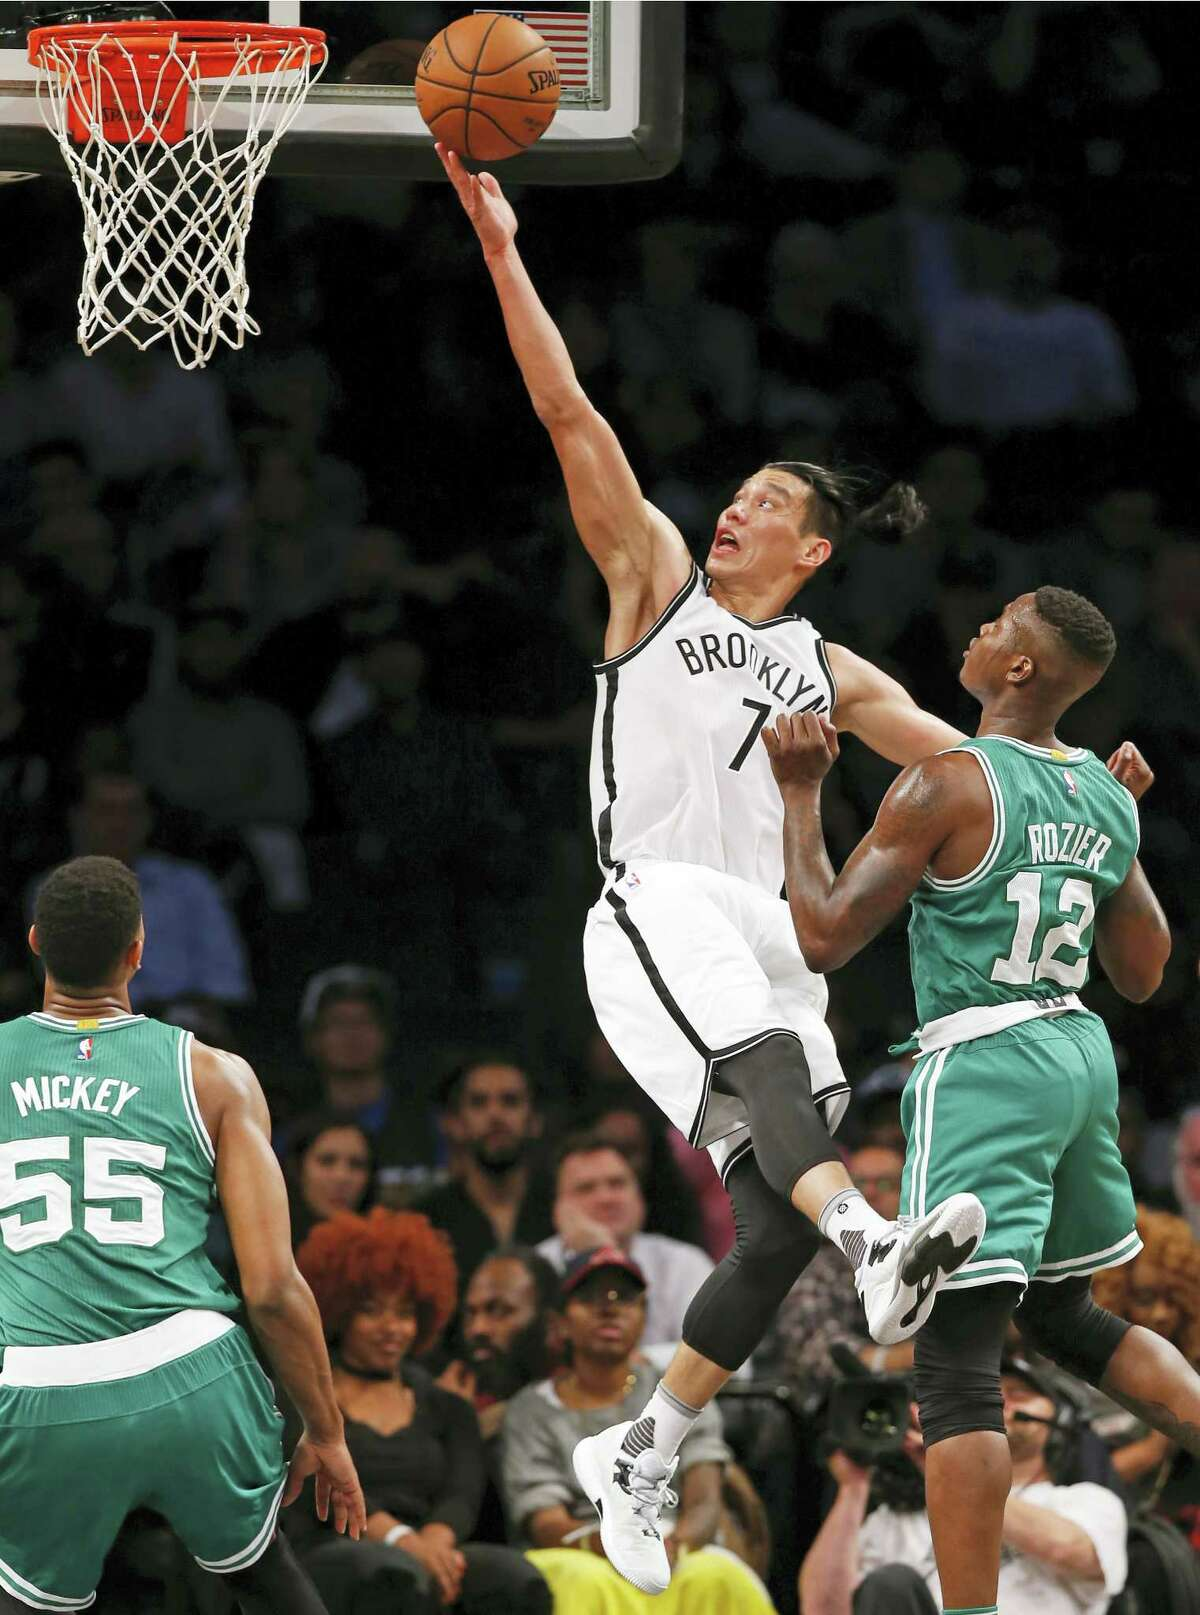 Brooklyn Nets guard Jeremy Lin (7) goes for a one-handed layup with Boston Celtics guard Terry Rozier (12) defending against him and Celtics forward Jordan Mickey (55) looking on in the second half of a preseason NBA basketball game on Oct. 13, 2016 in New York.